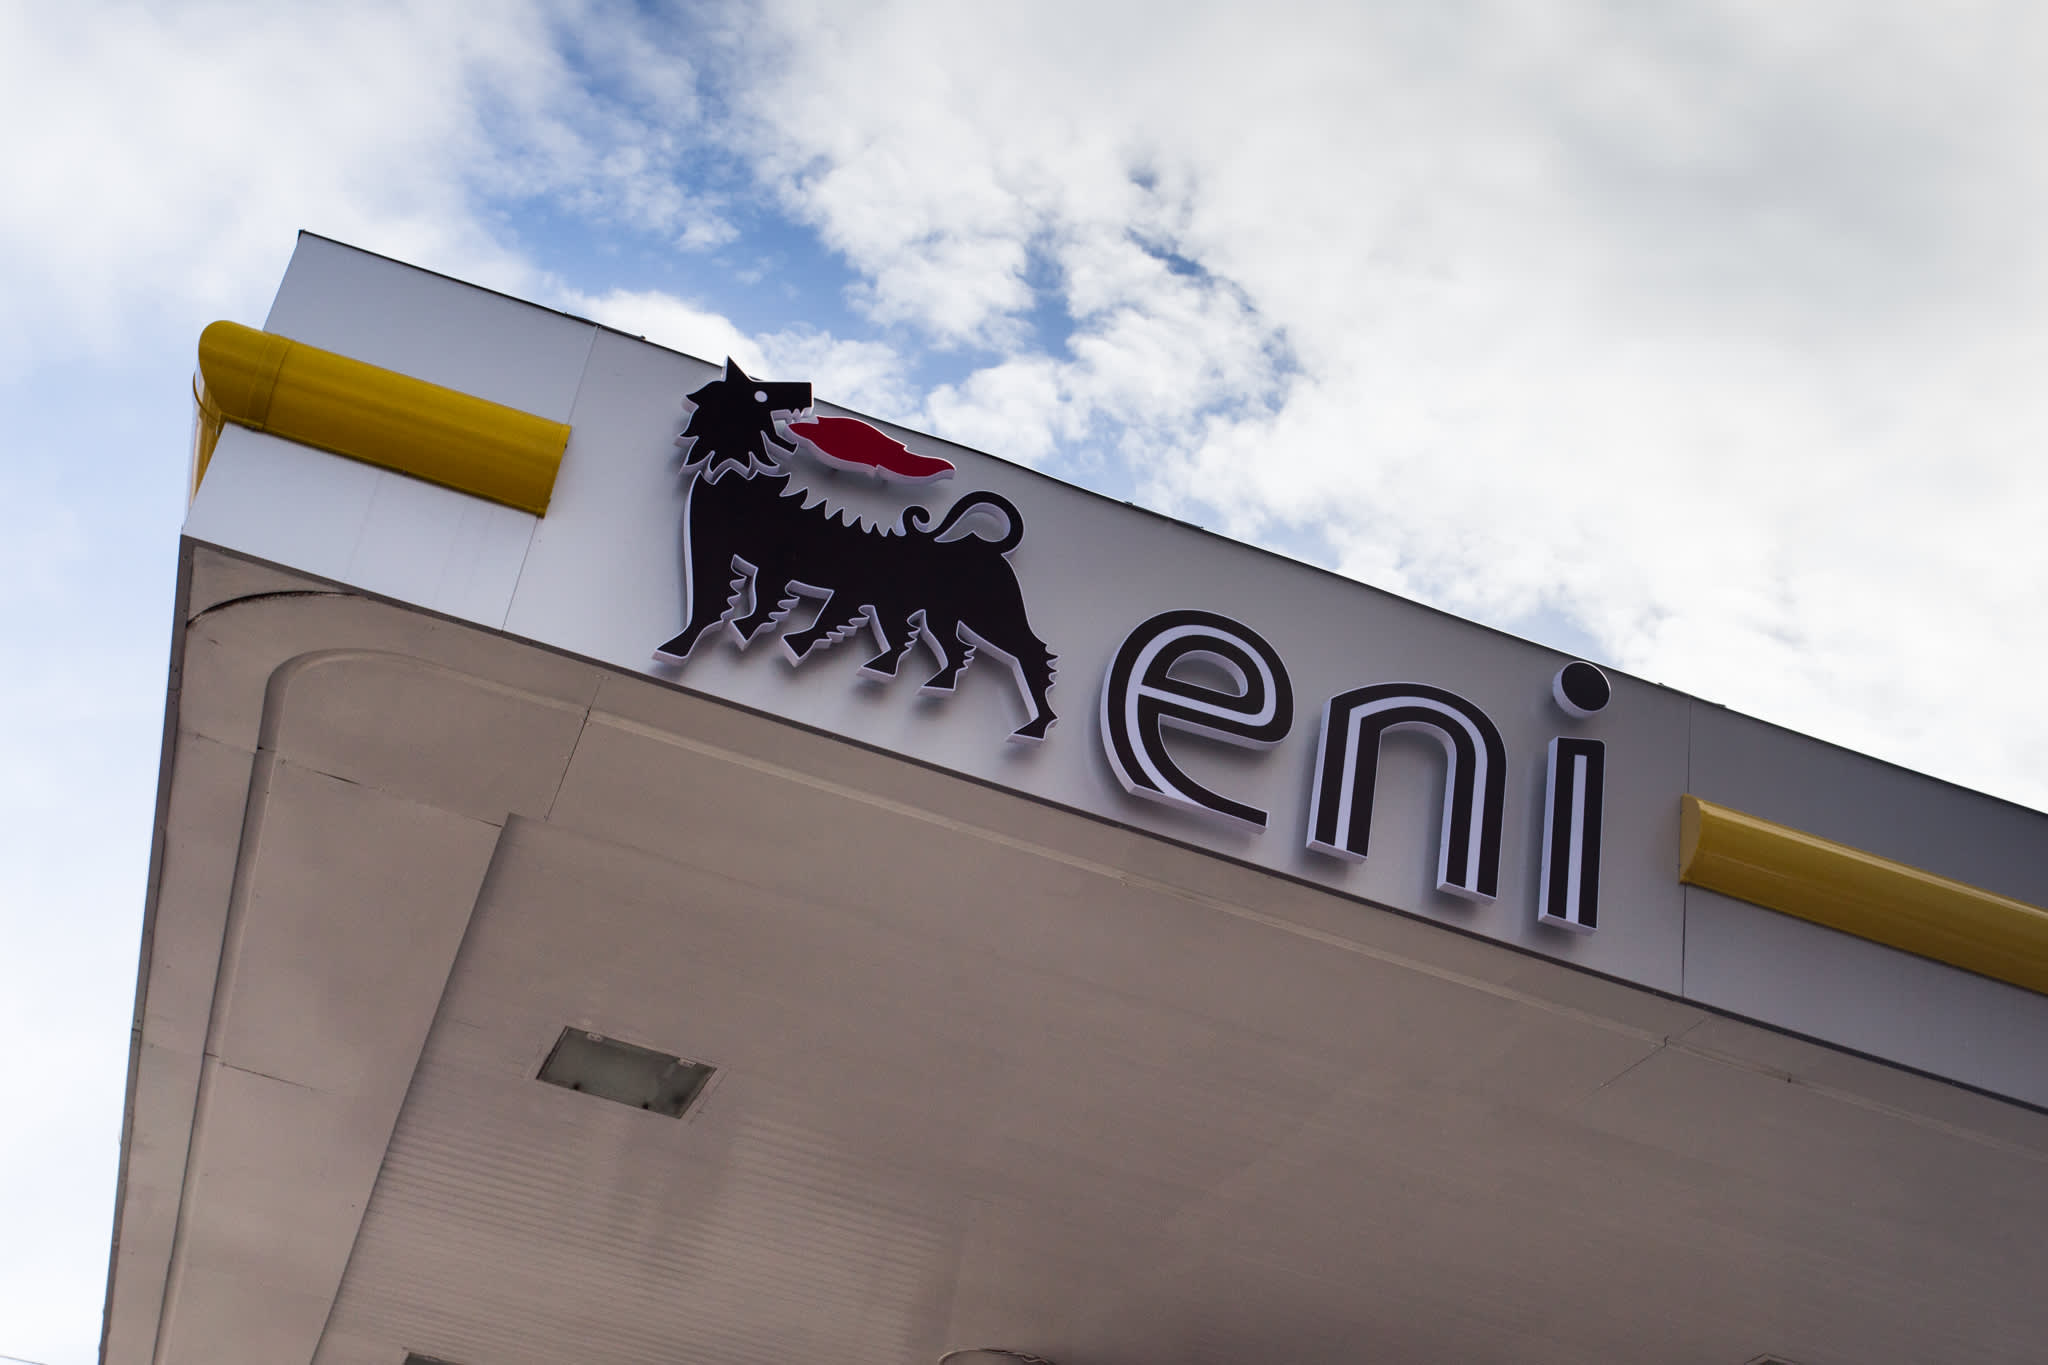 Libya can be the next oil and gas paradise, says Eni CEO